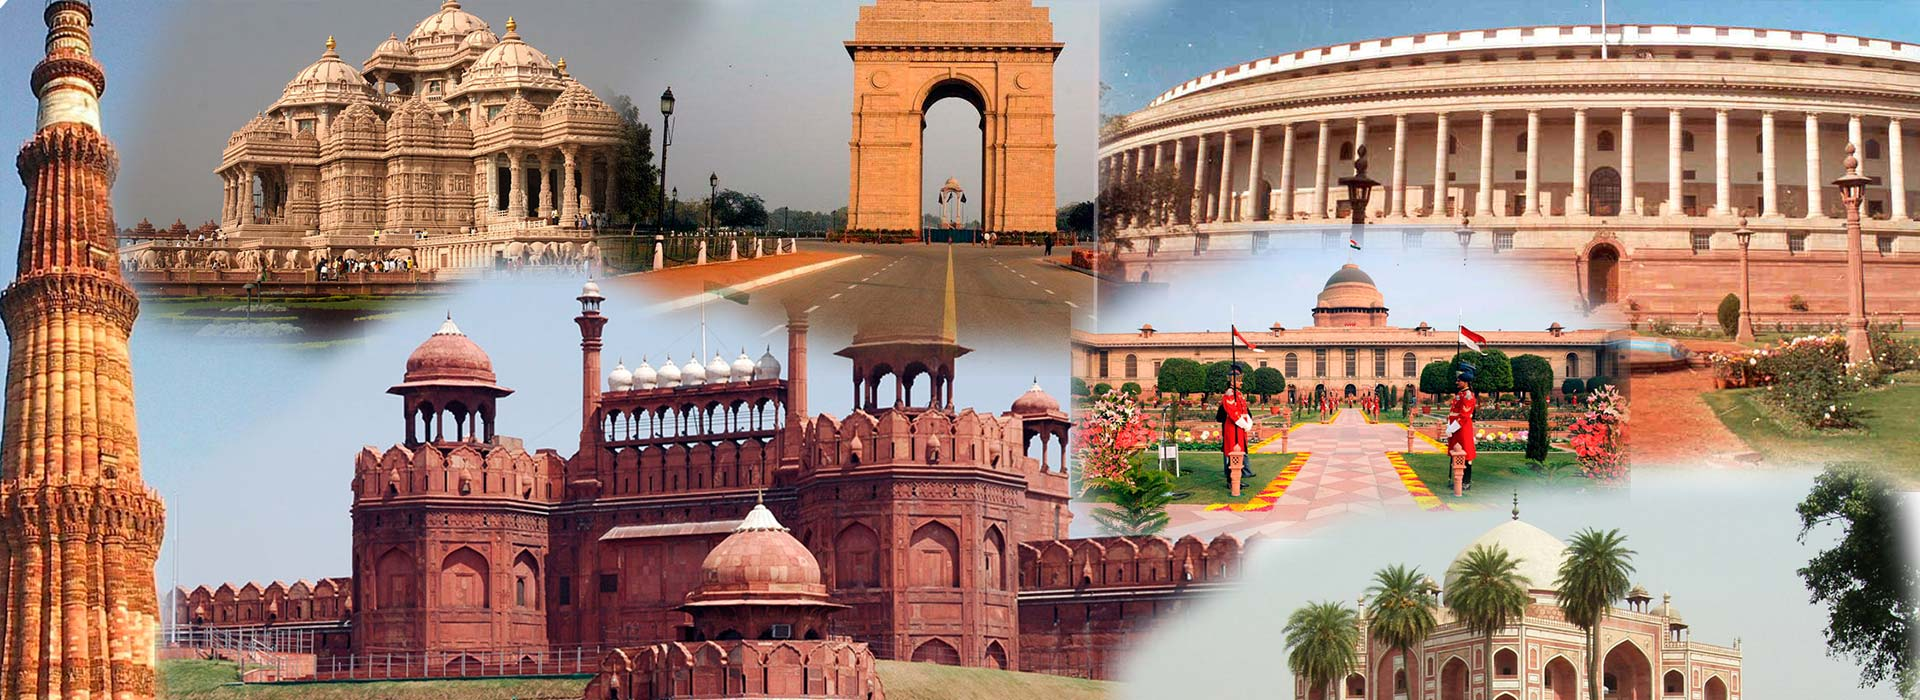 FULL DAY SIGHTSEEING OF OLD & NEW DELHI